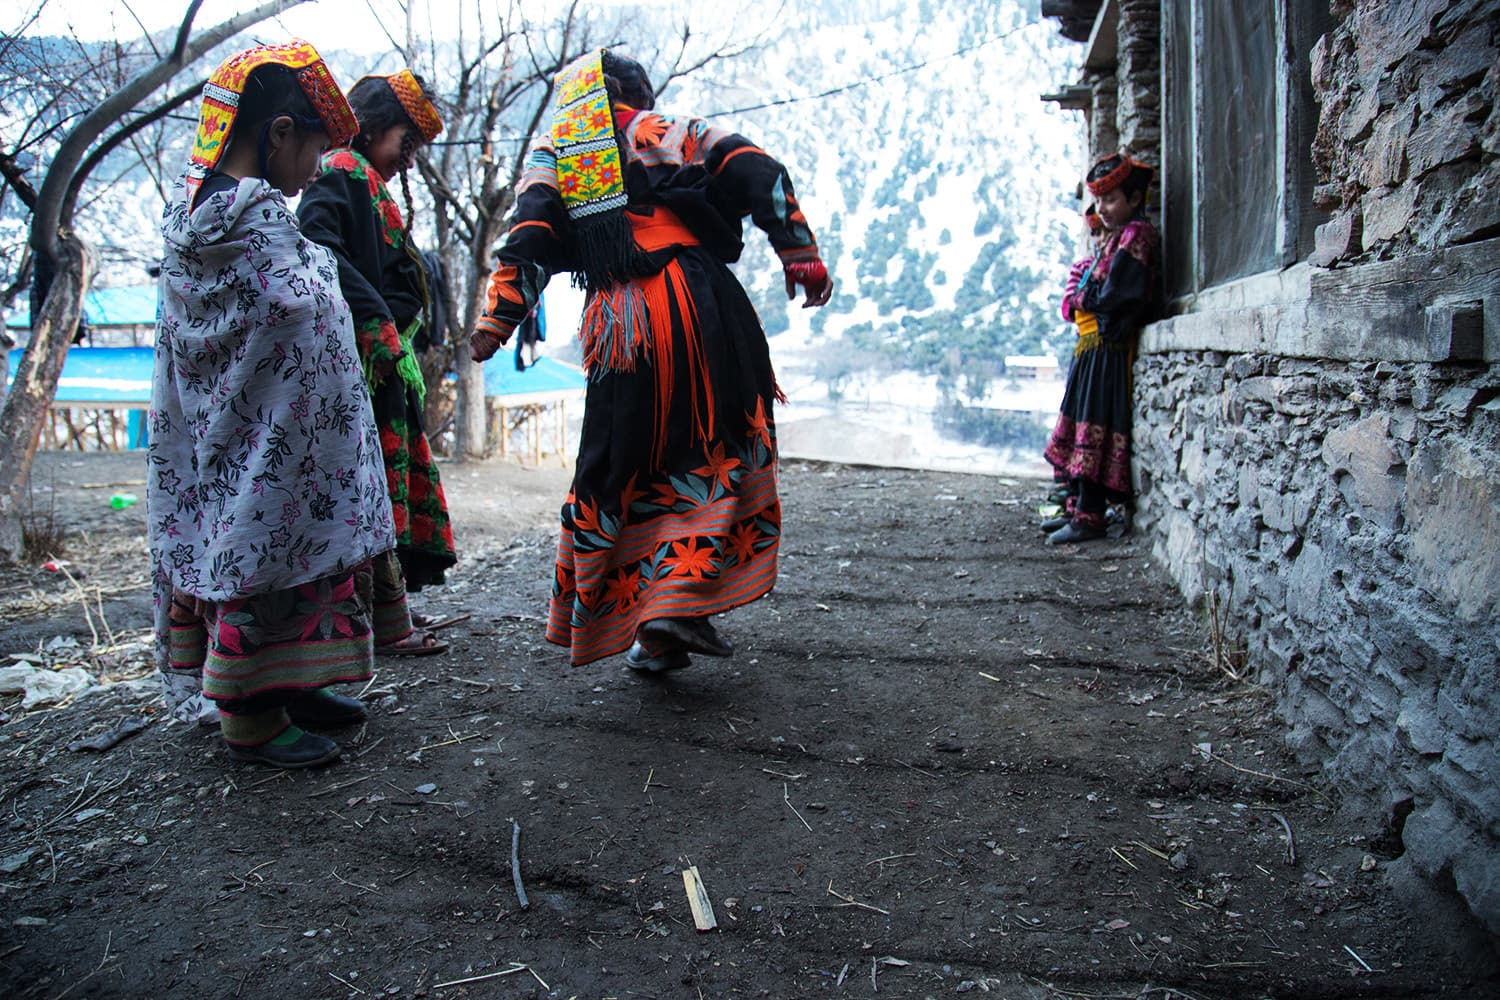 Girls play a traditional game on a street